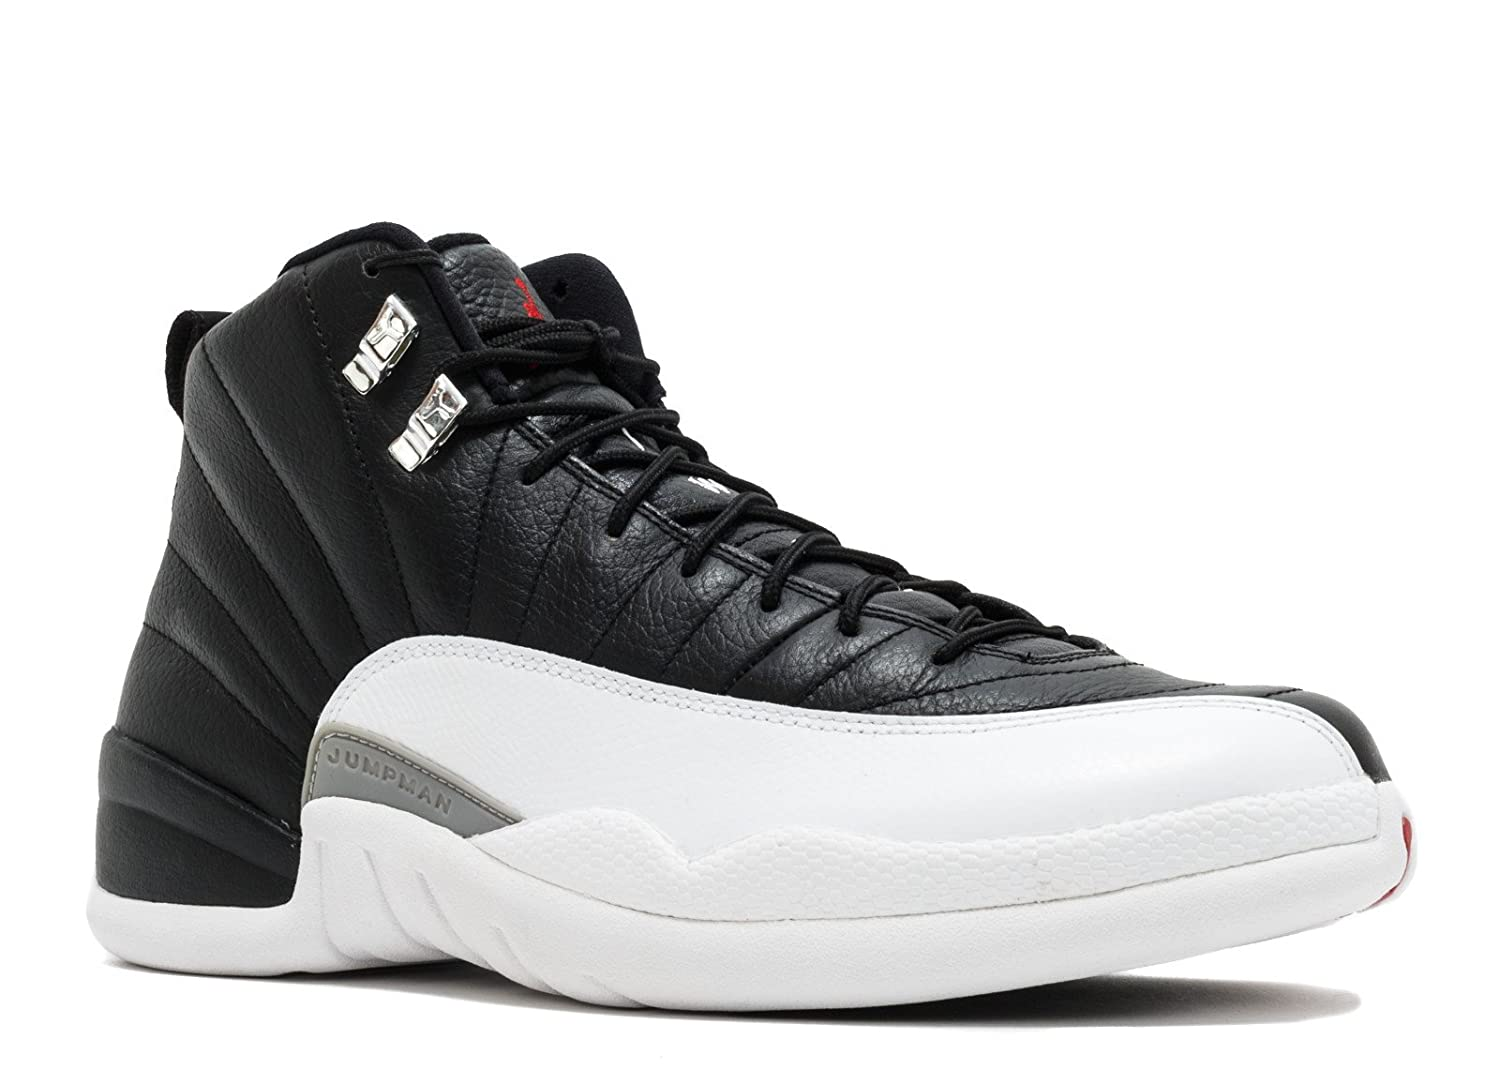 online retailer c4b59 6ee2e Amazon.com   NIKE Mens Air Jordan 12 Retro Playoff Leather Basketball Shoes    Basketball